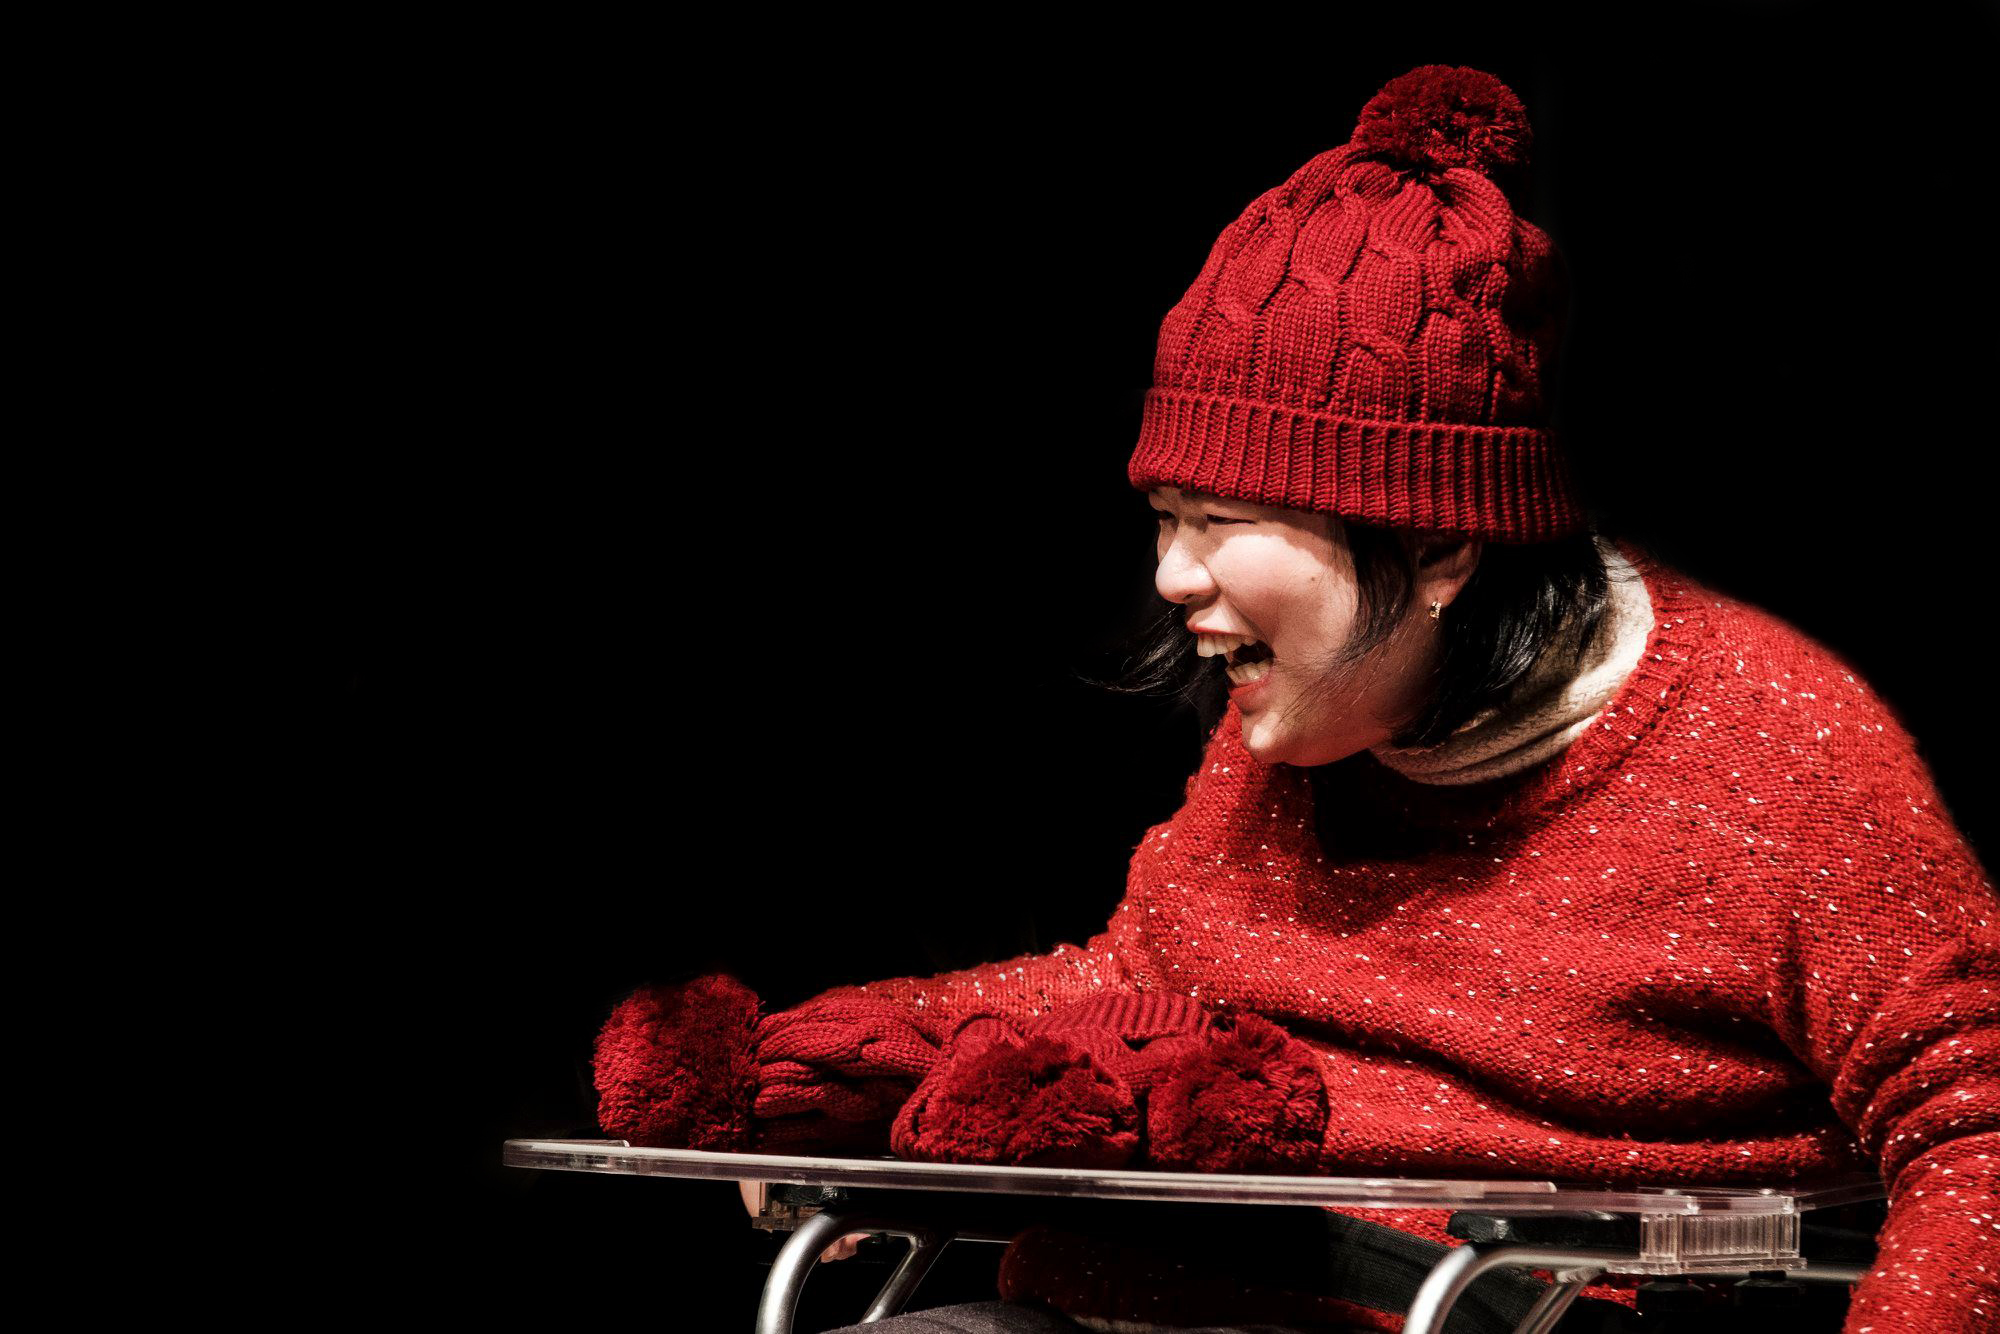 Yooseon smiling on stage, wearing a red sweater and beanie